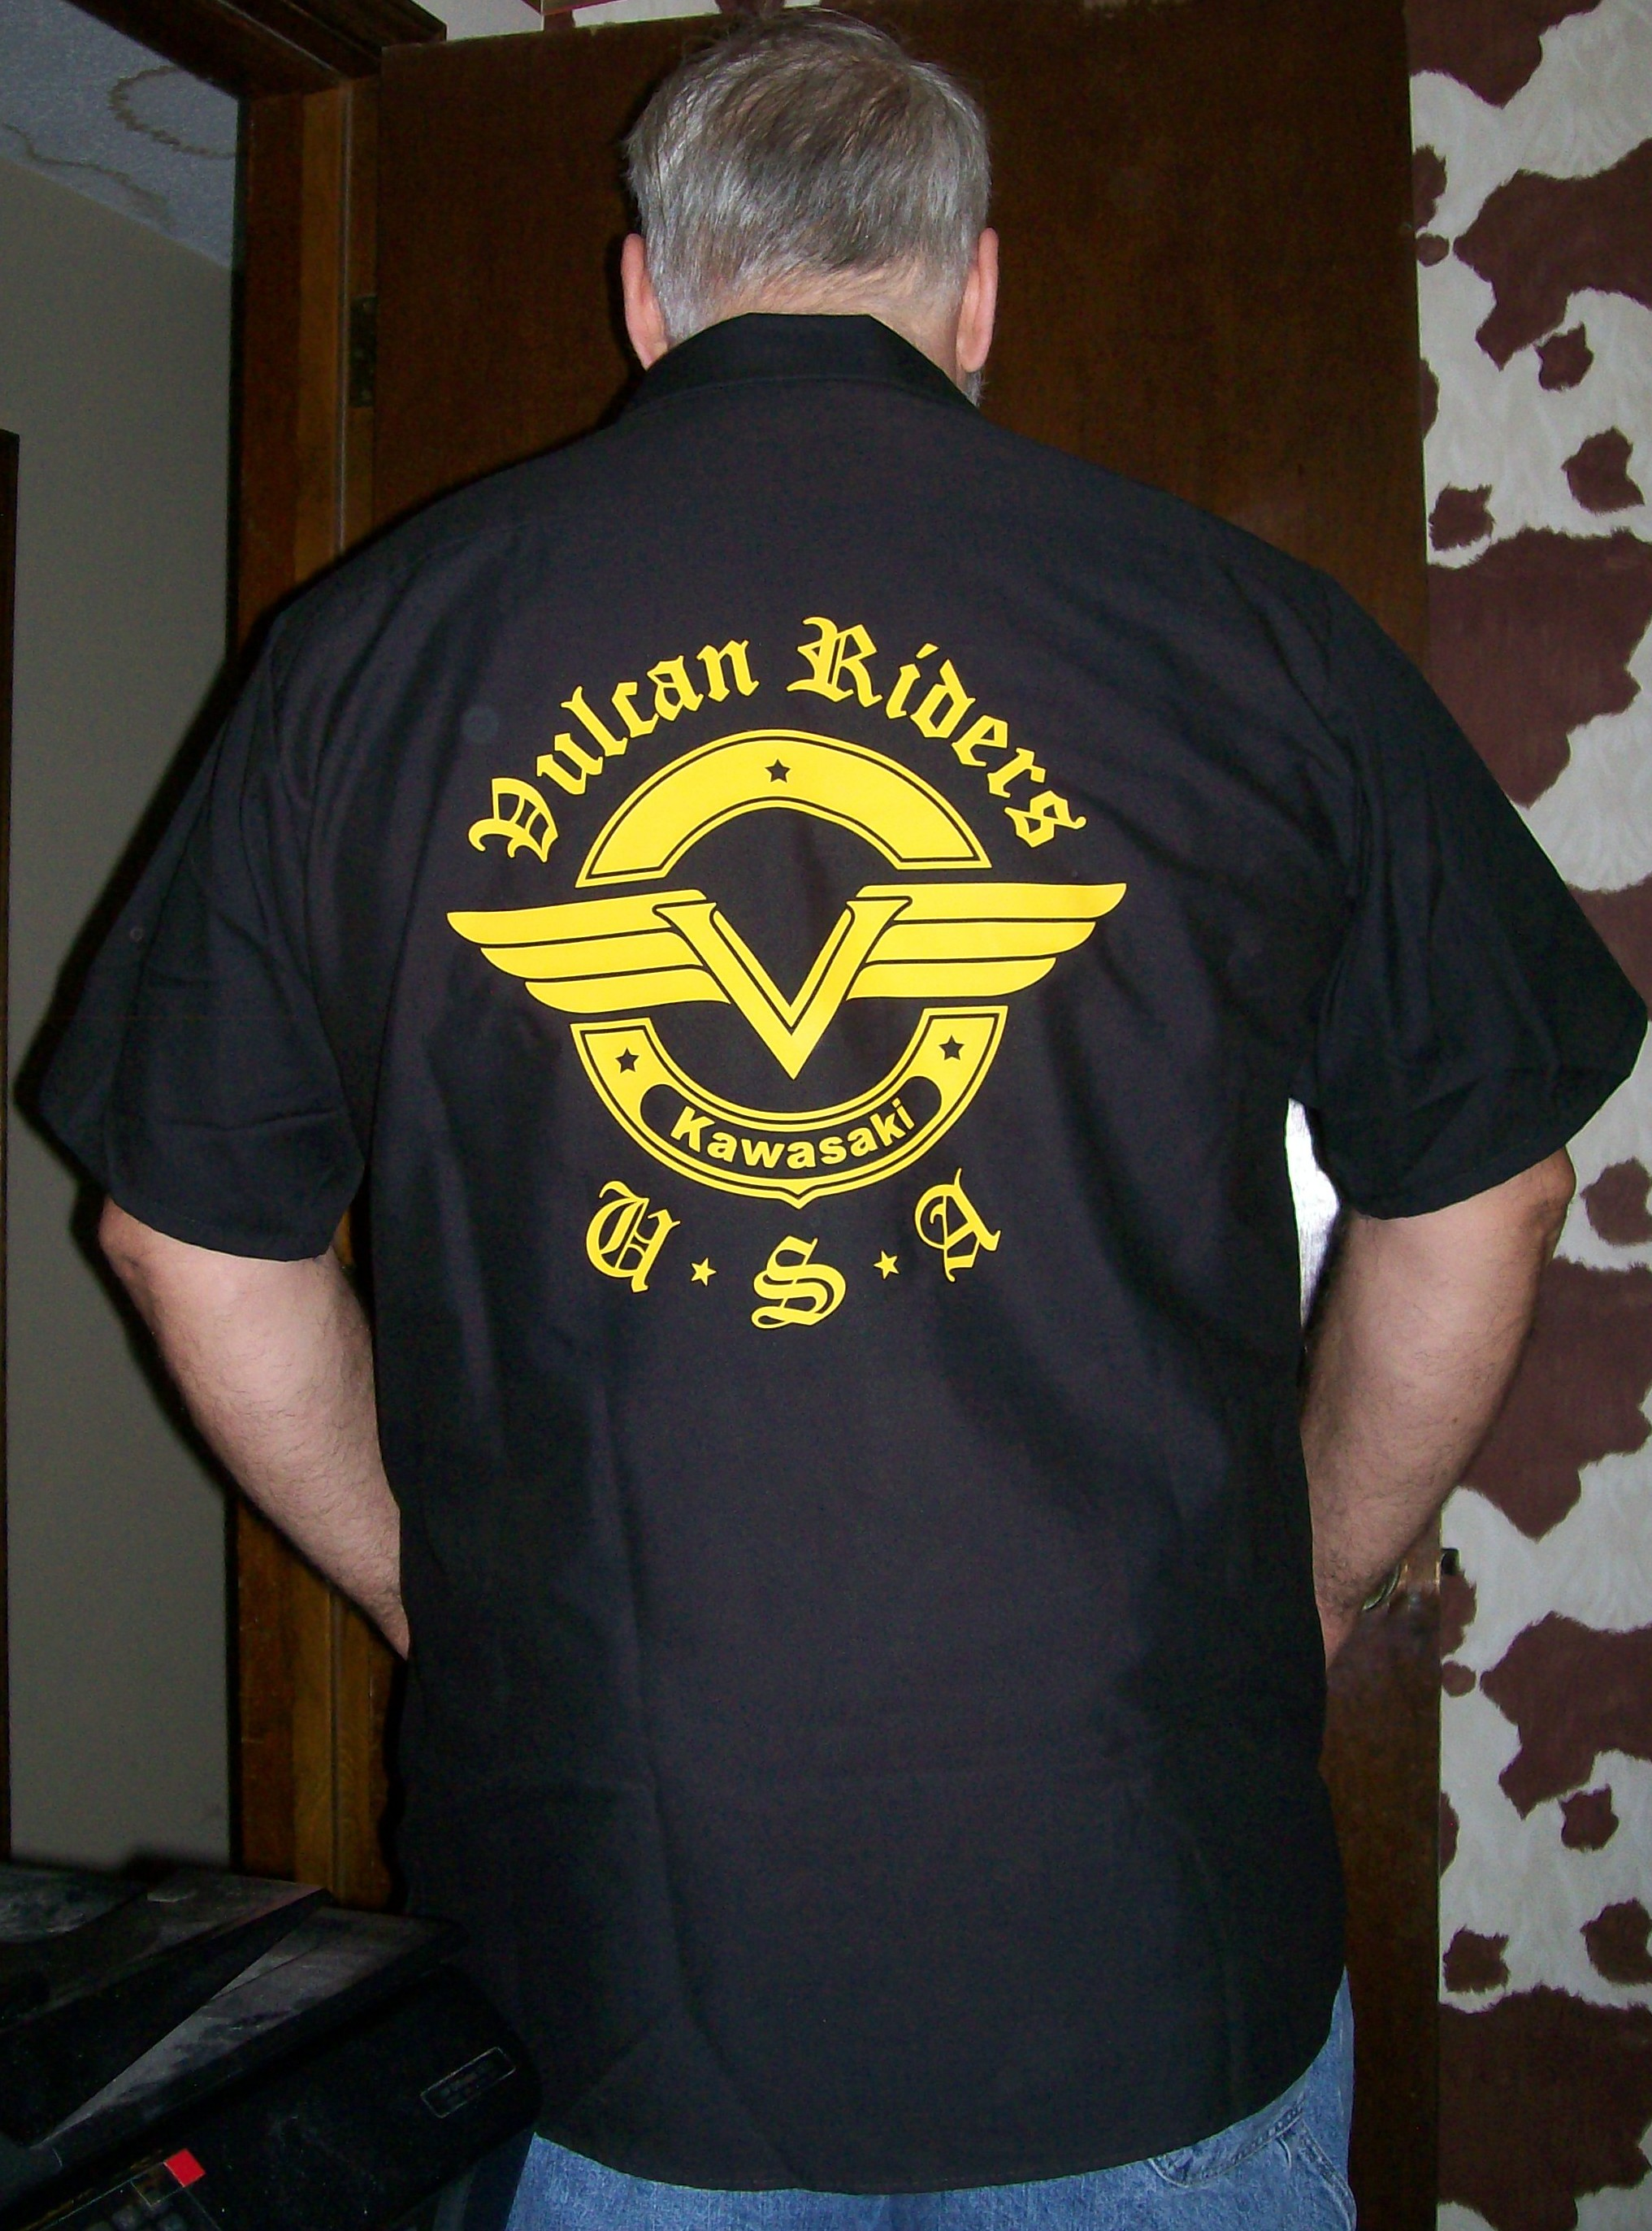 Vra apparel vulcan riders association usa good friends for Mechanic shirts with logo